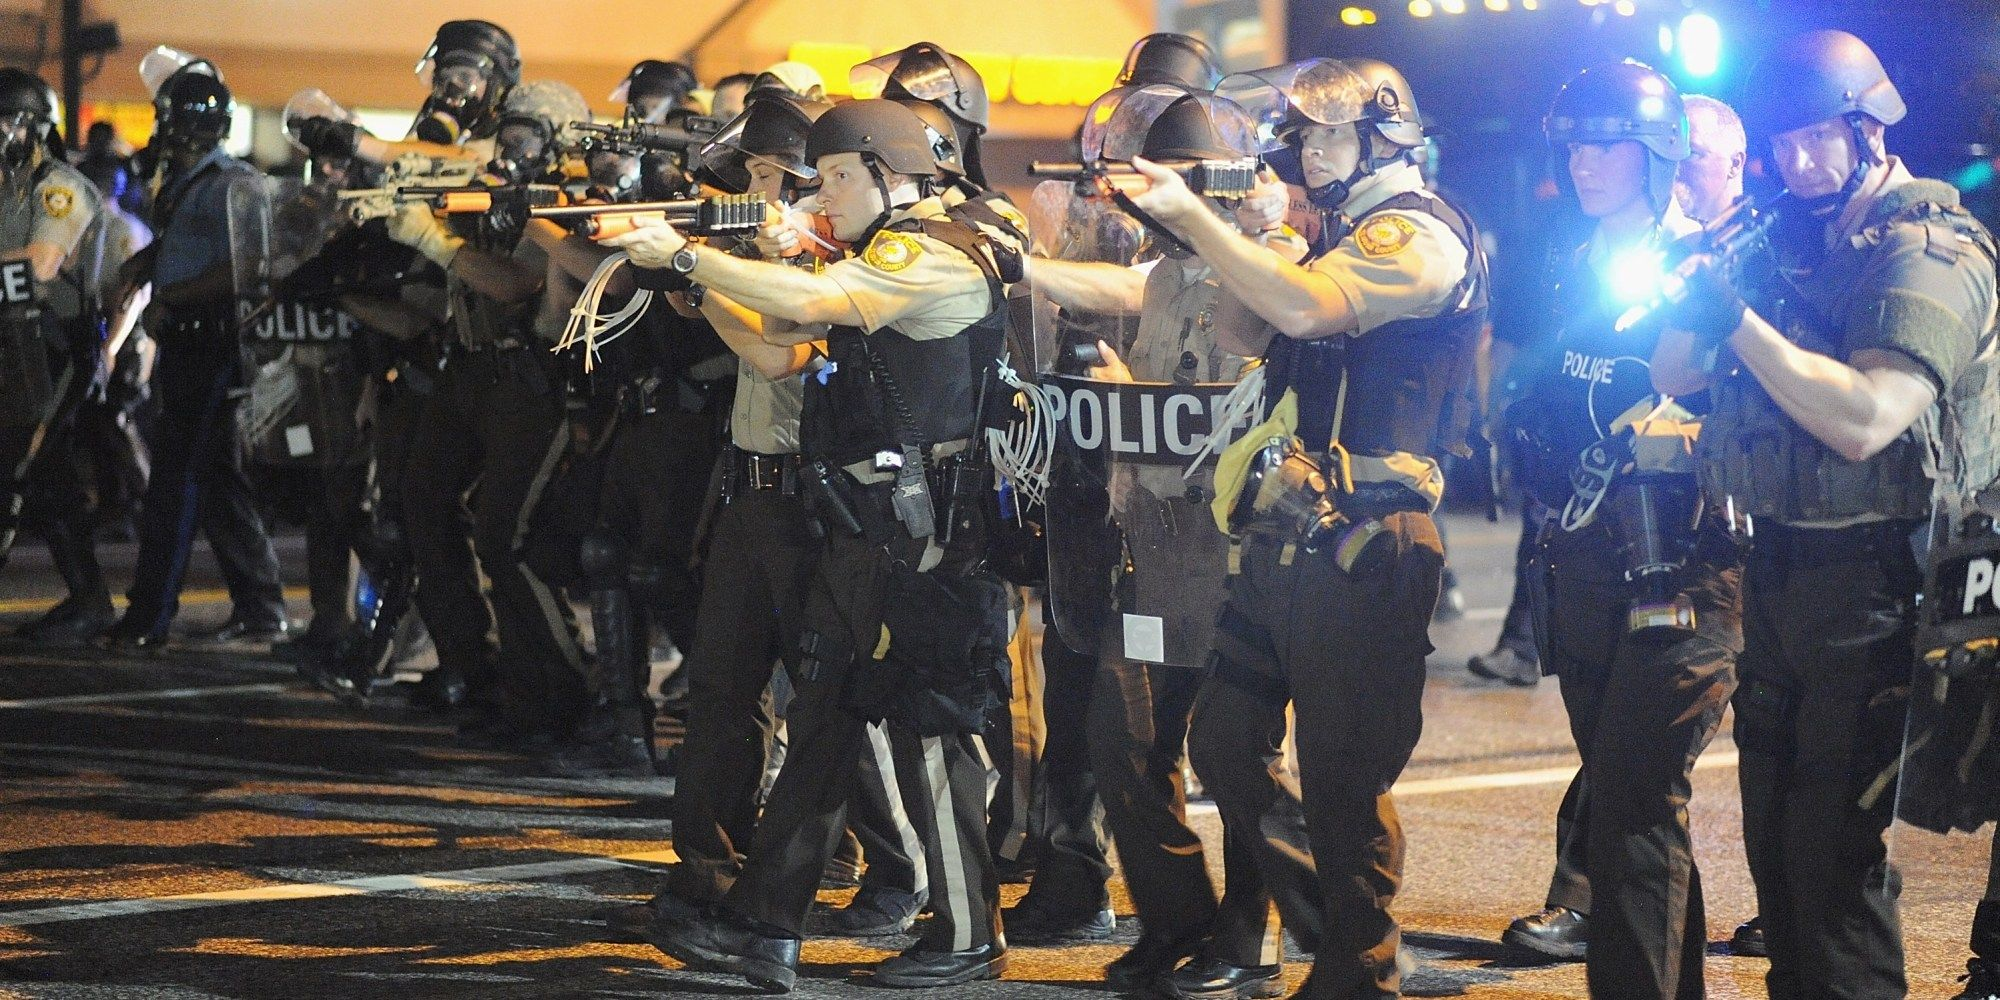 In the days following the Aug. 9 shooting of Michael Brown in Ferguson, Missouri, law enforcement used weapons usually seen in wartime, like smoke bombs, rubber bullets and stun grenades, against protesters.  Lyle Jeremy Rubin, a former active-duty...